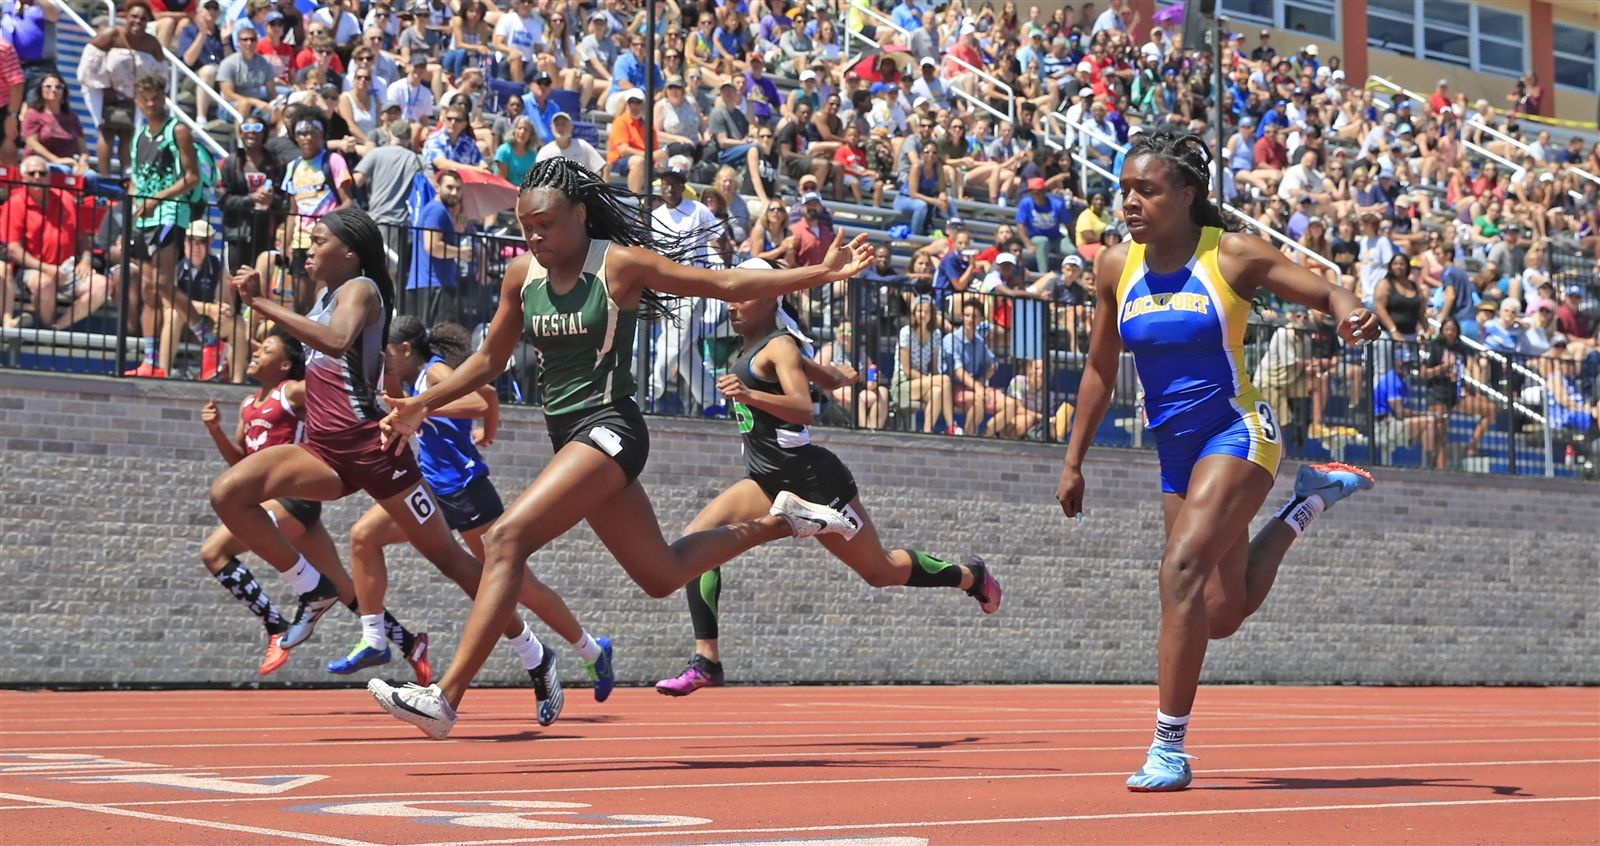 Kahniya James finishes third in the Division 1 Girls 100 Meter Dash at the NYSPHSAA Track & Field Championships at Middletown high school on Saturday, June 8, 2019.